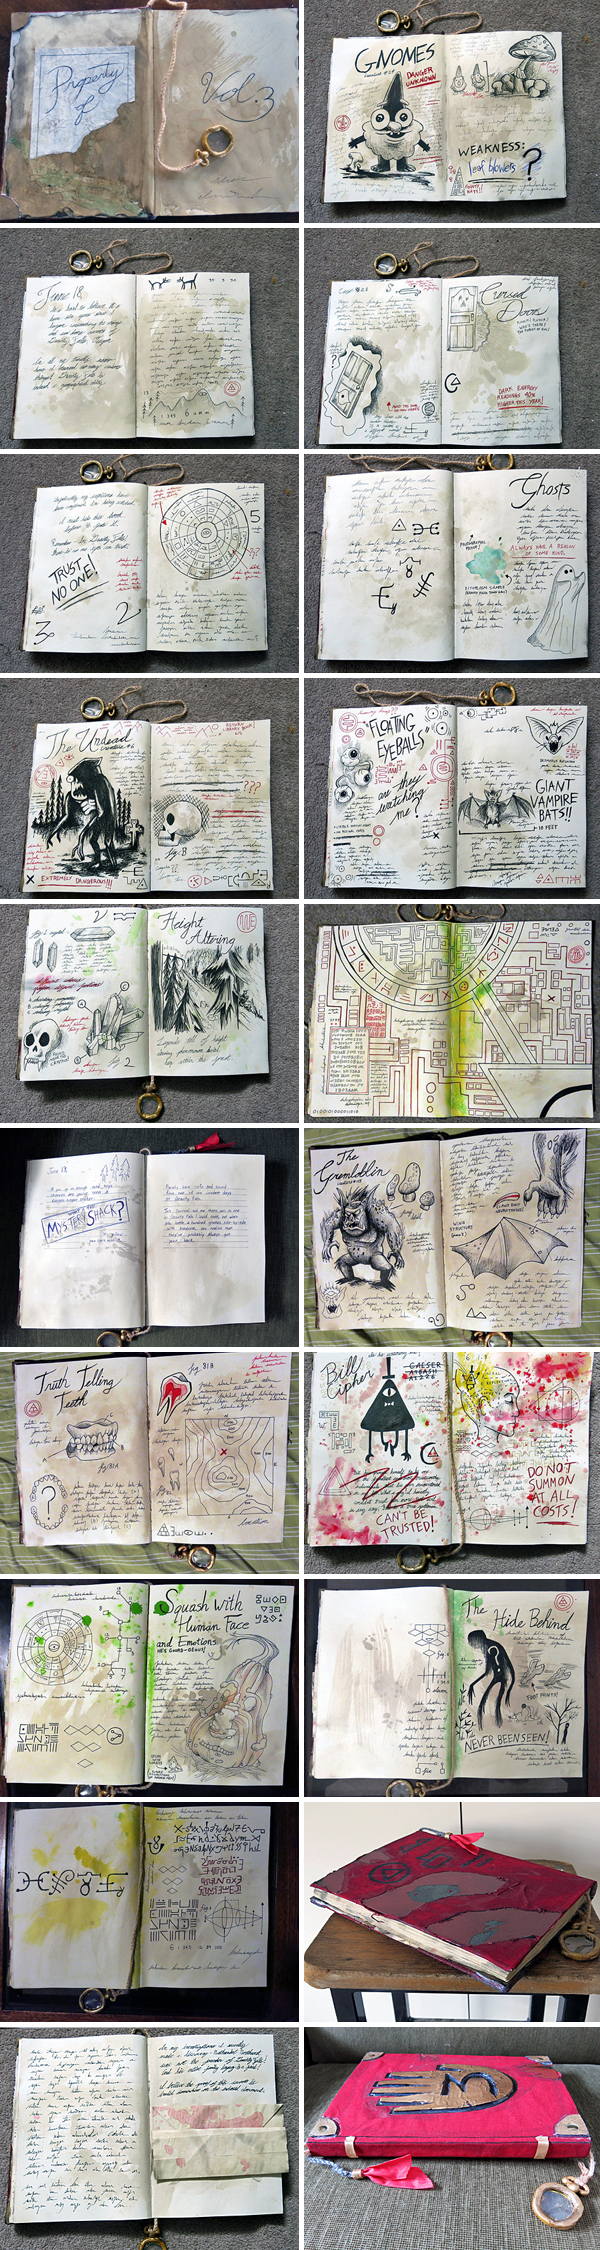 Journal #3 pages.